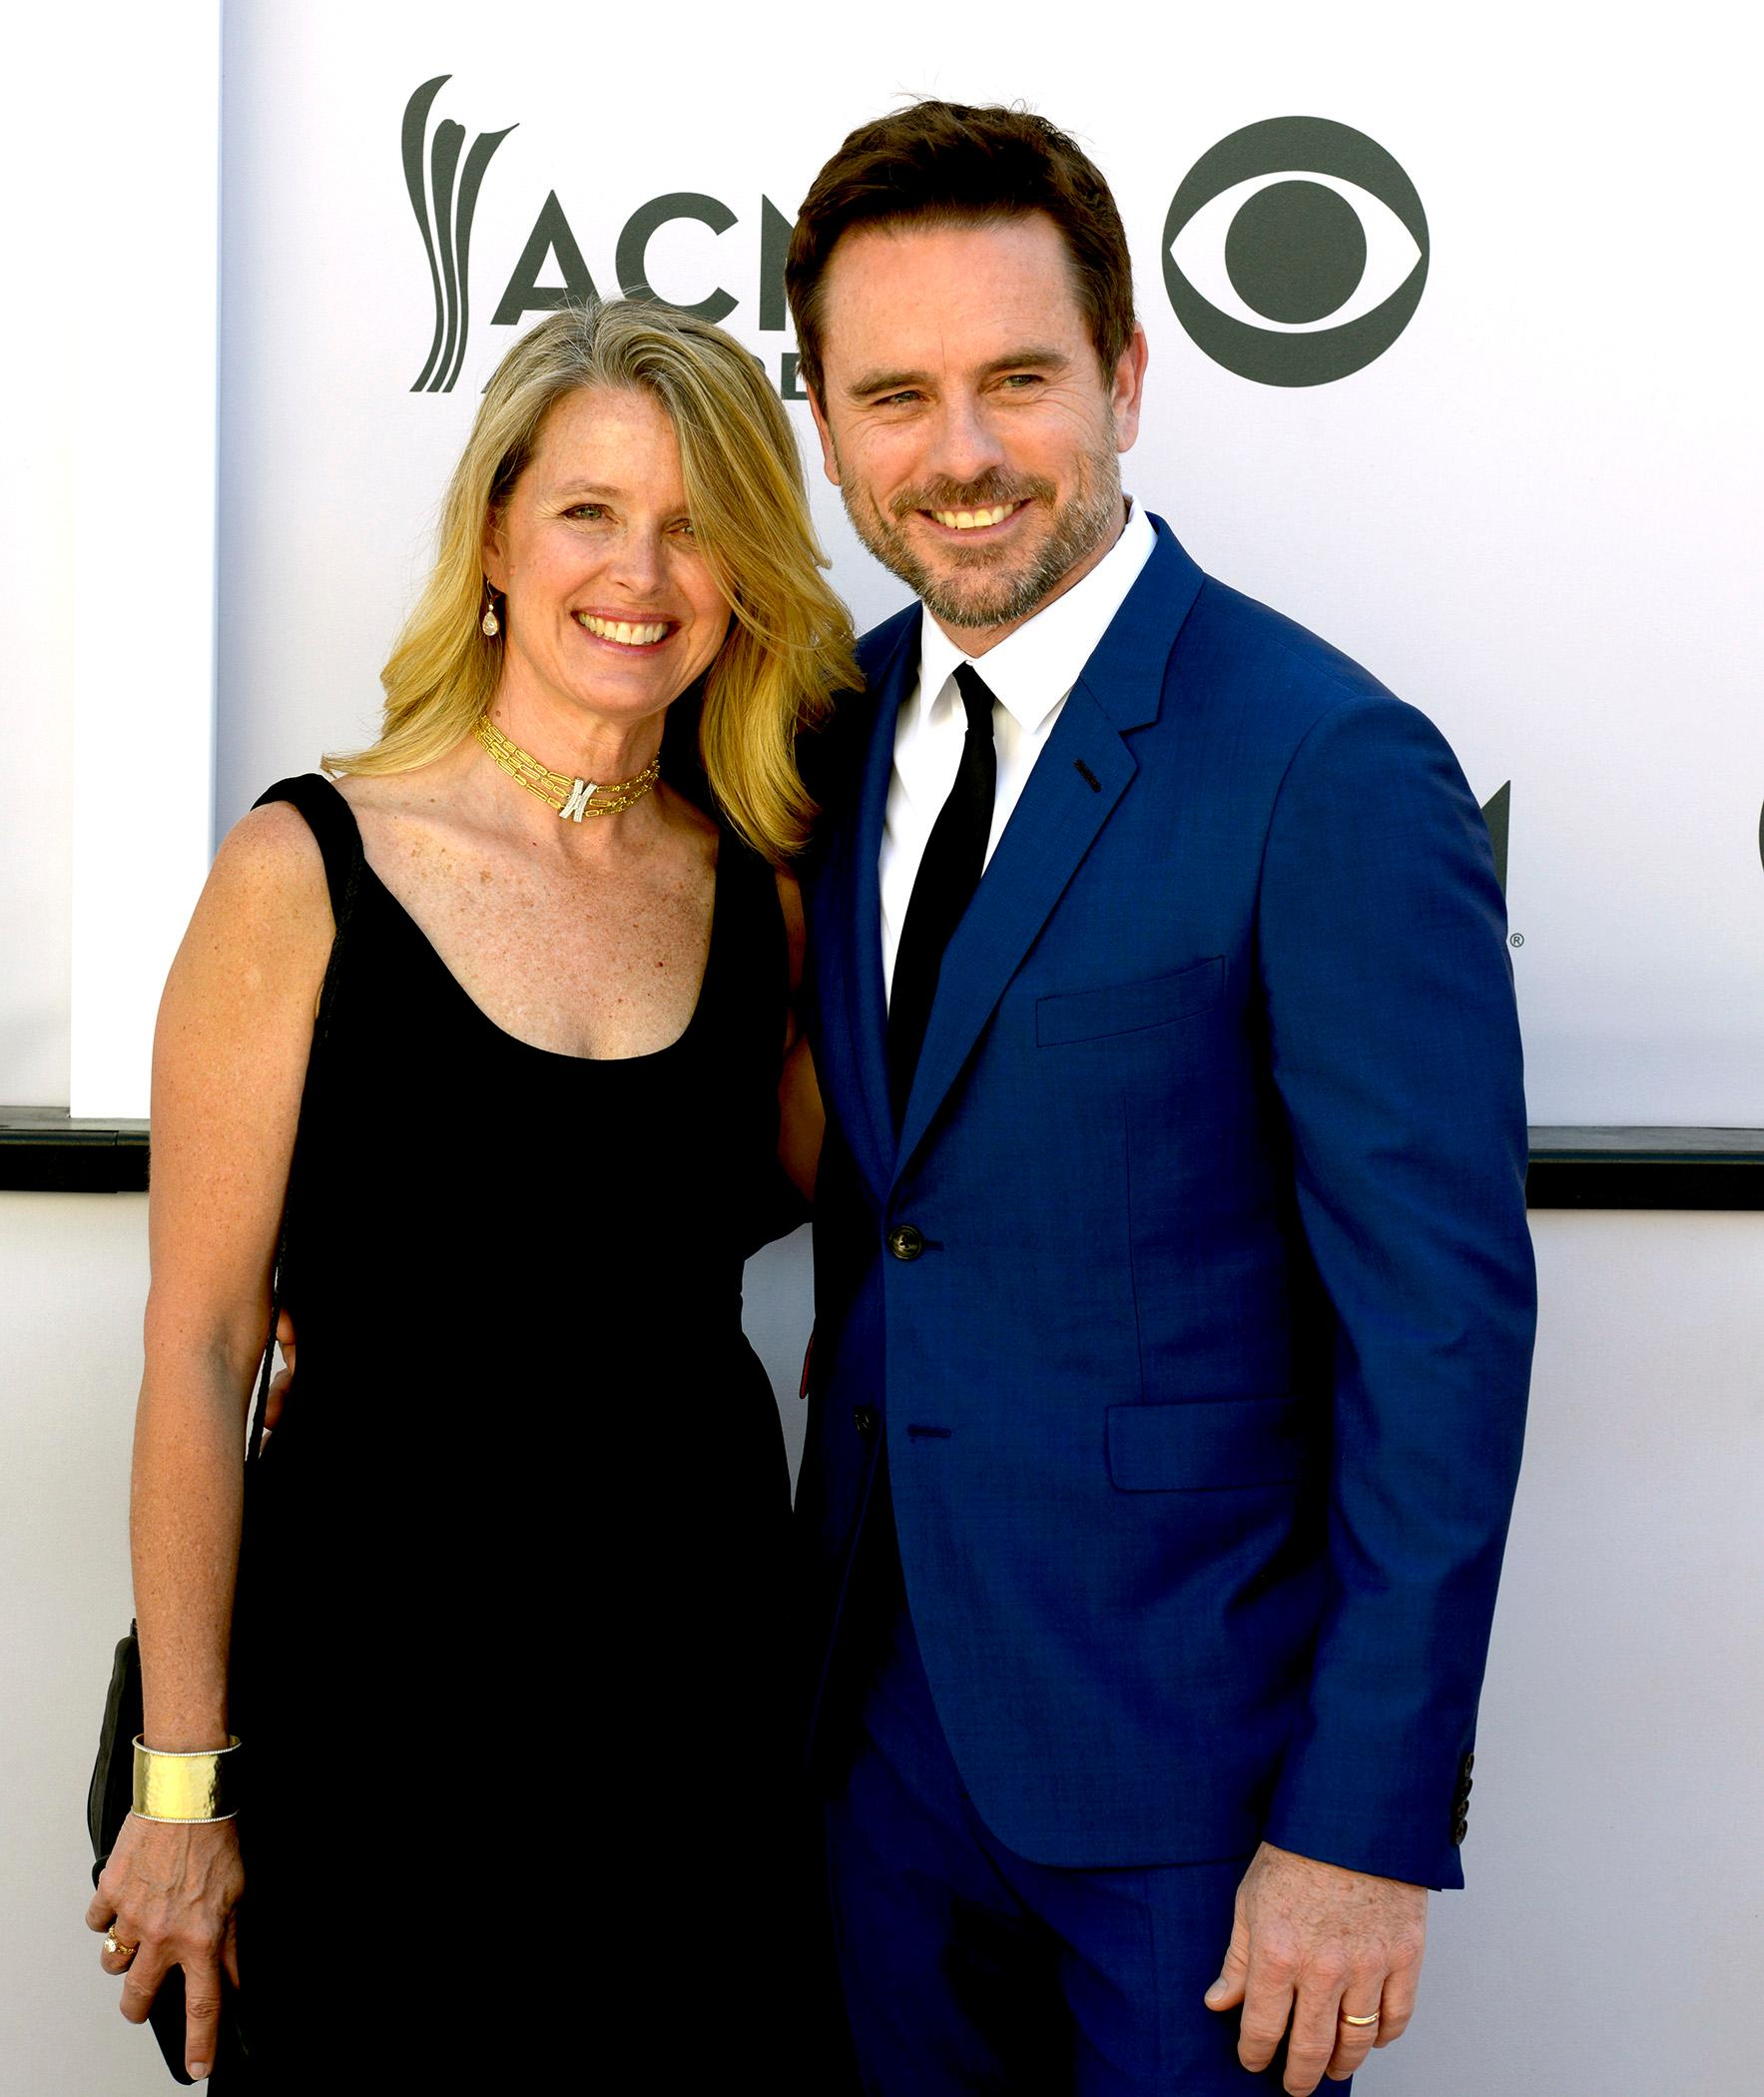 Charles Eston, best known for his role as Deacon Claybourne on the TV show Nashville with wife Patty Hanson walks the Academy of Country Music Awards red carpet at T-Mobile Arena. Sunday, April 2, 2017. (Glenn Pinkerton/ Las Vegas News Bureau)